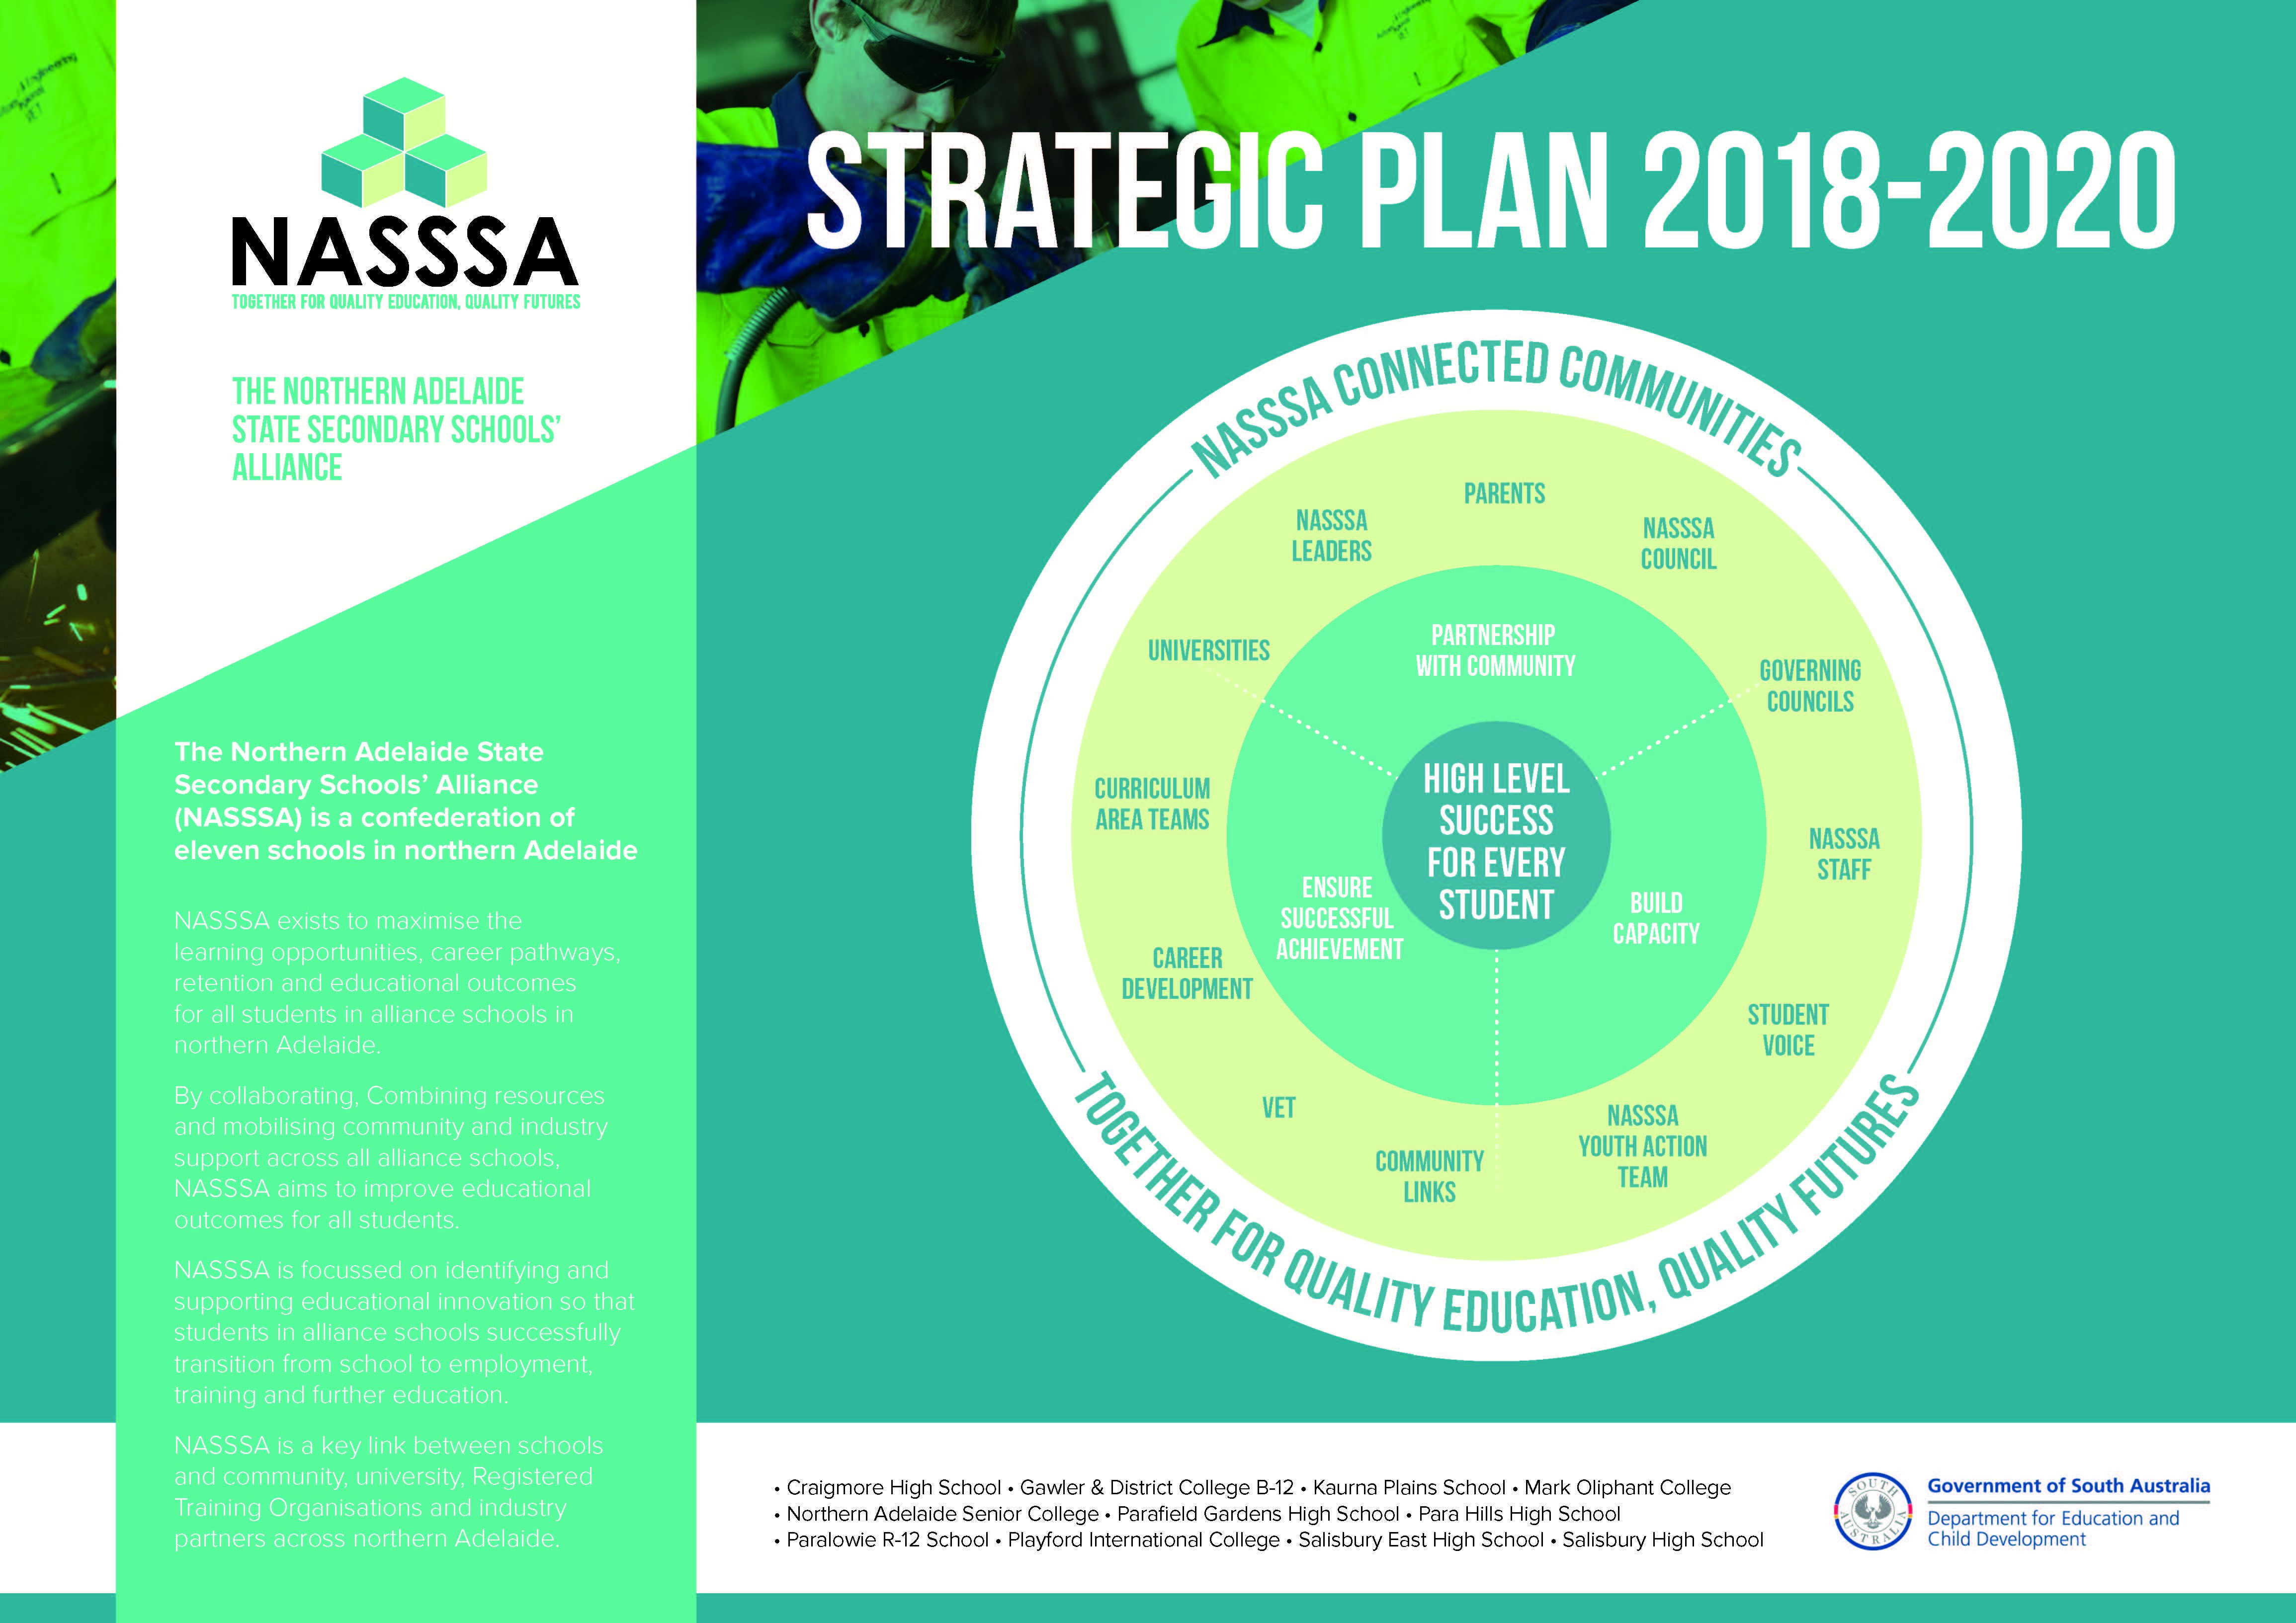 NASSSA Strategic Plan 2018-2020